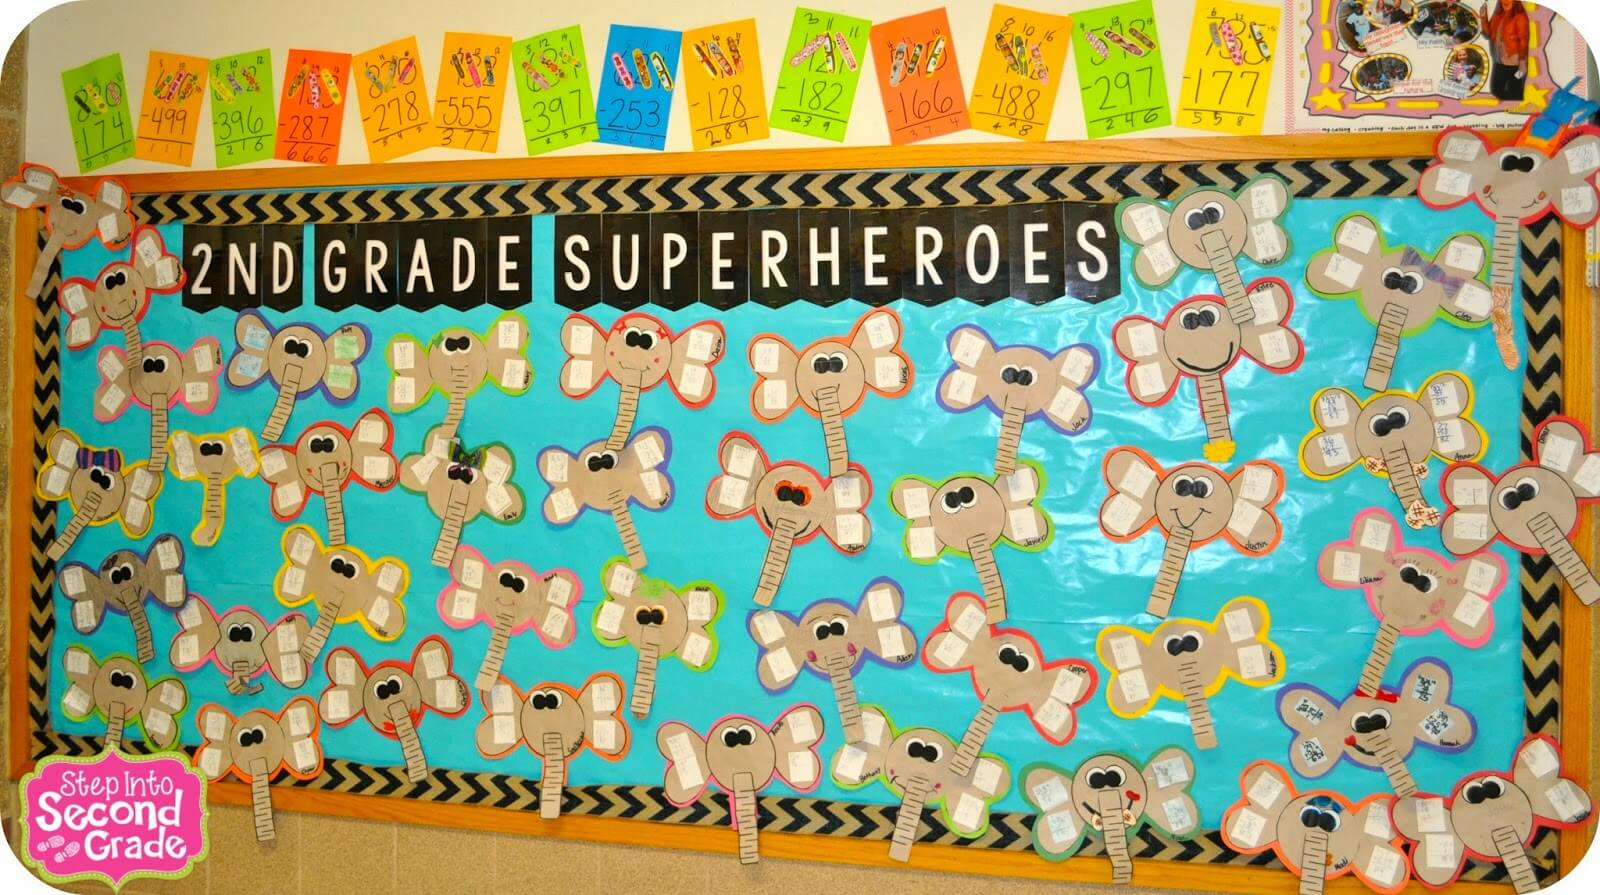 Open House 2015 - Step into 2nd Grade